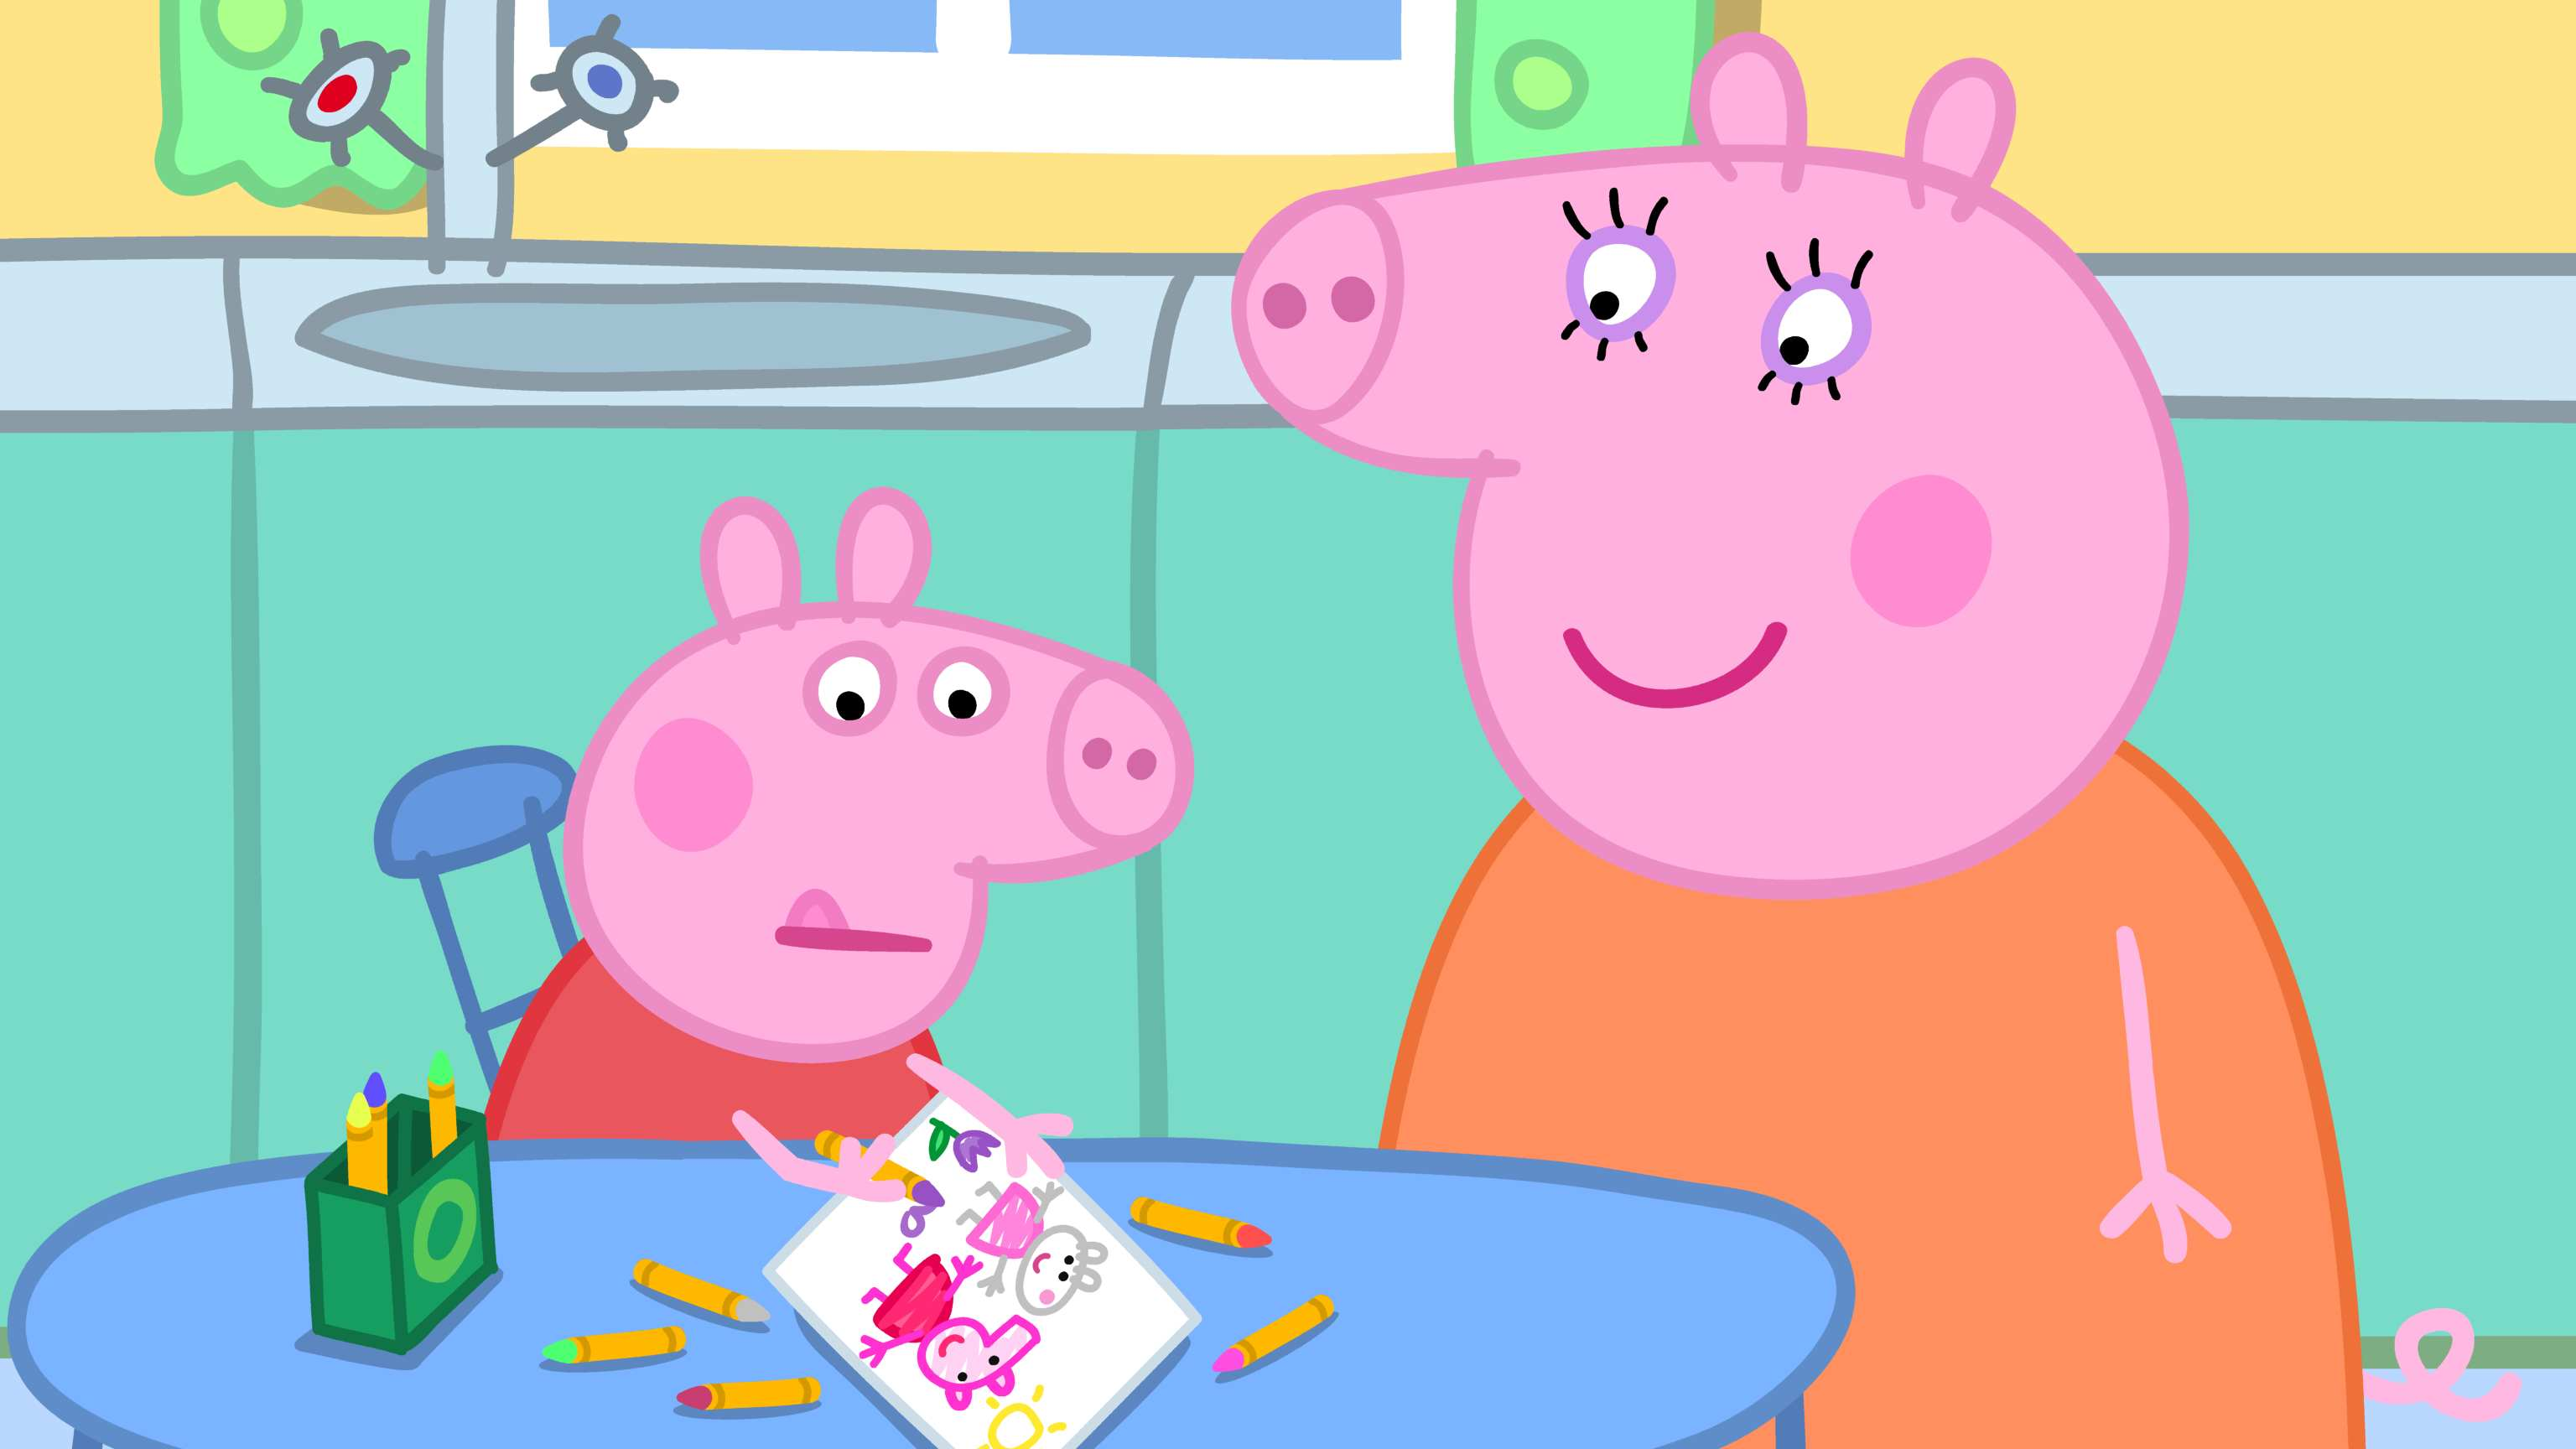 Peppa Pig Exclusive Clips New Episode Coming Soon To Nickelodeon